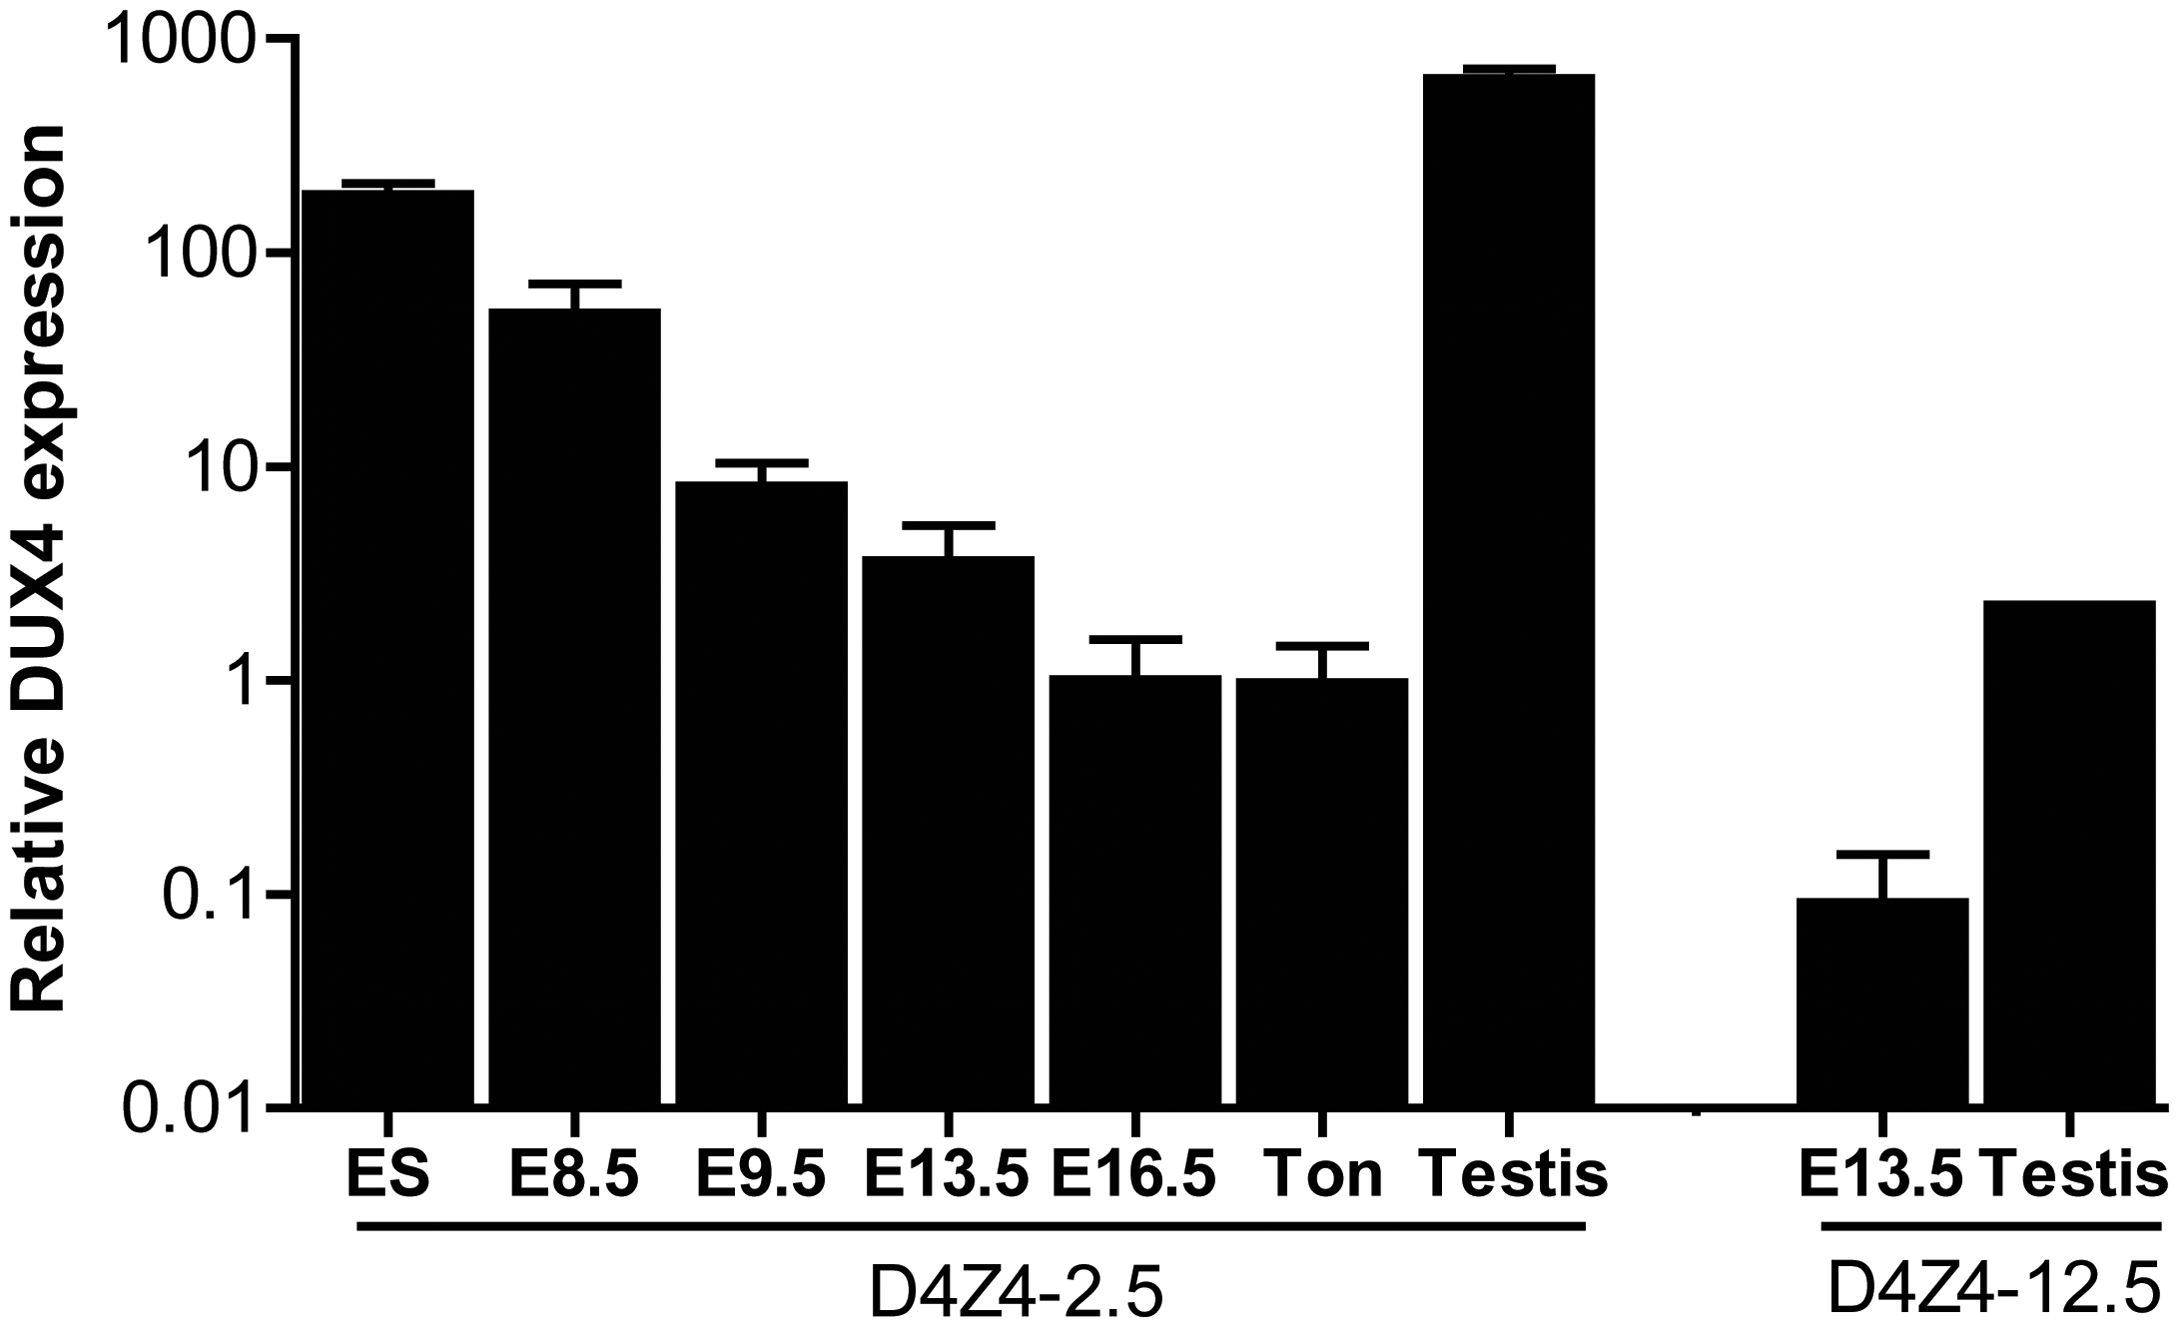 Quantative expression analysis of DUX4 transcripts from the telomeric D4Z4 unit in D4Z4-12.5 and D4Z4-2.5 mice.